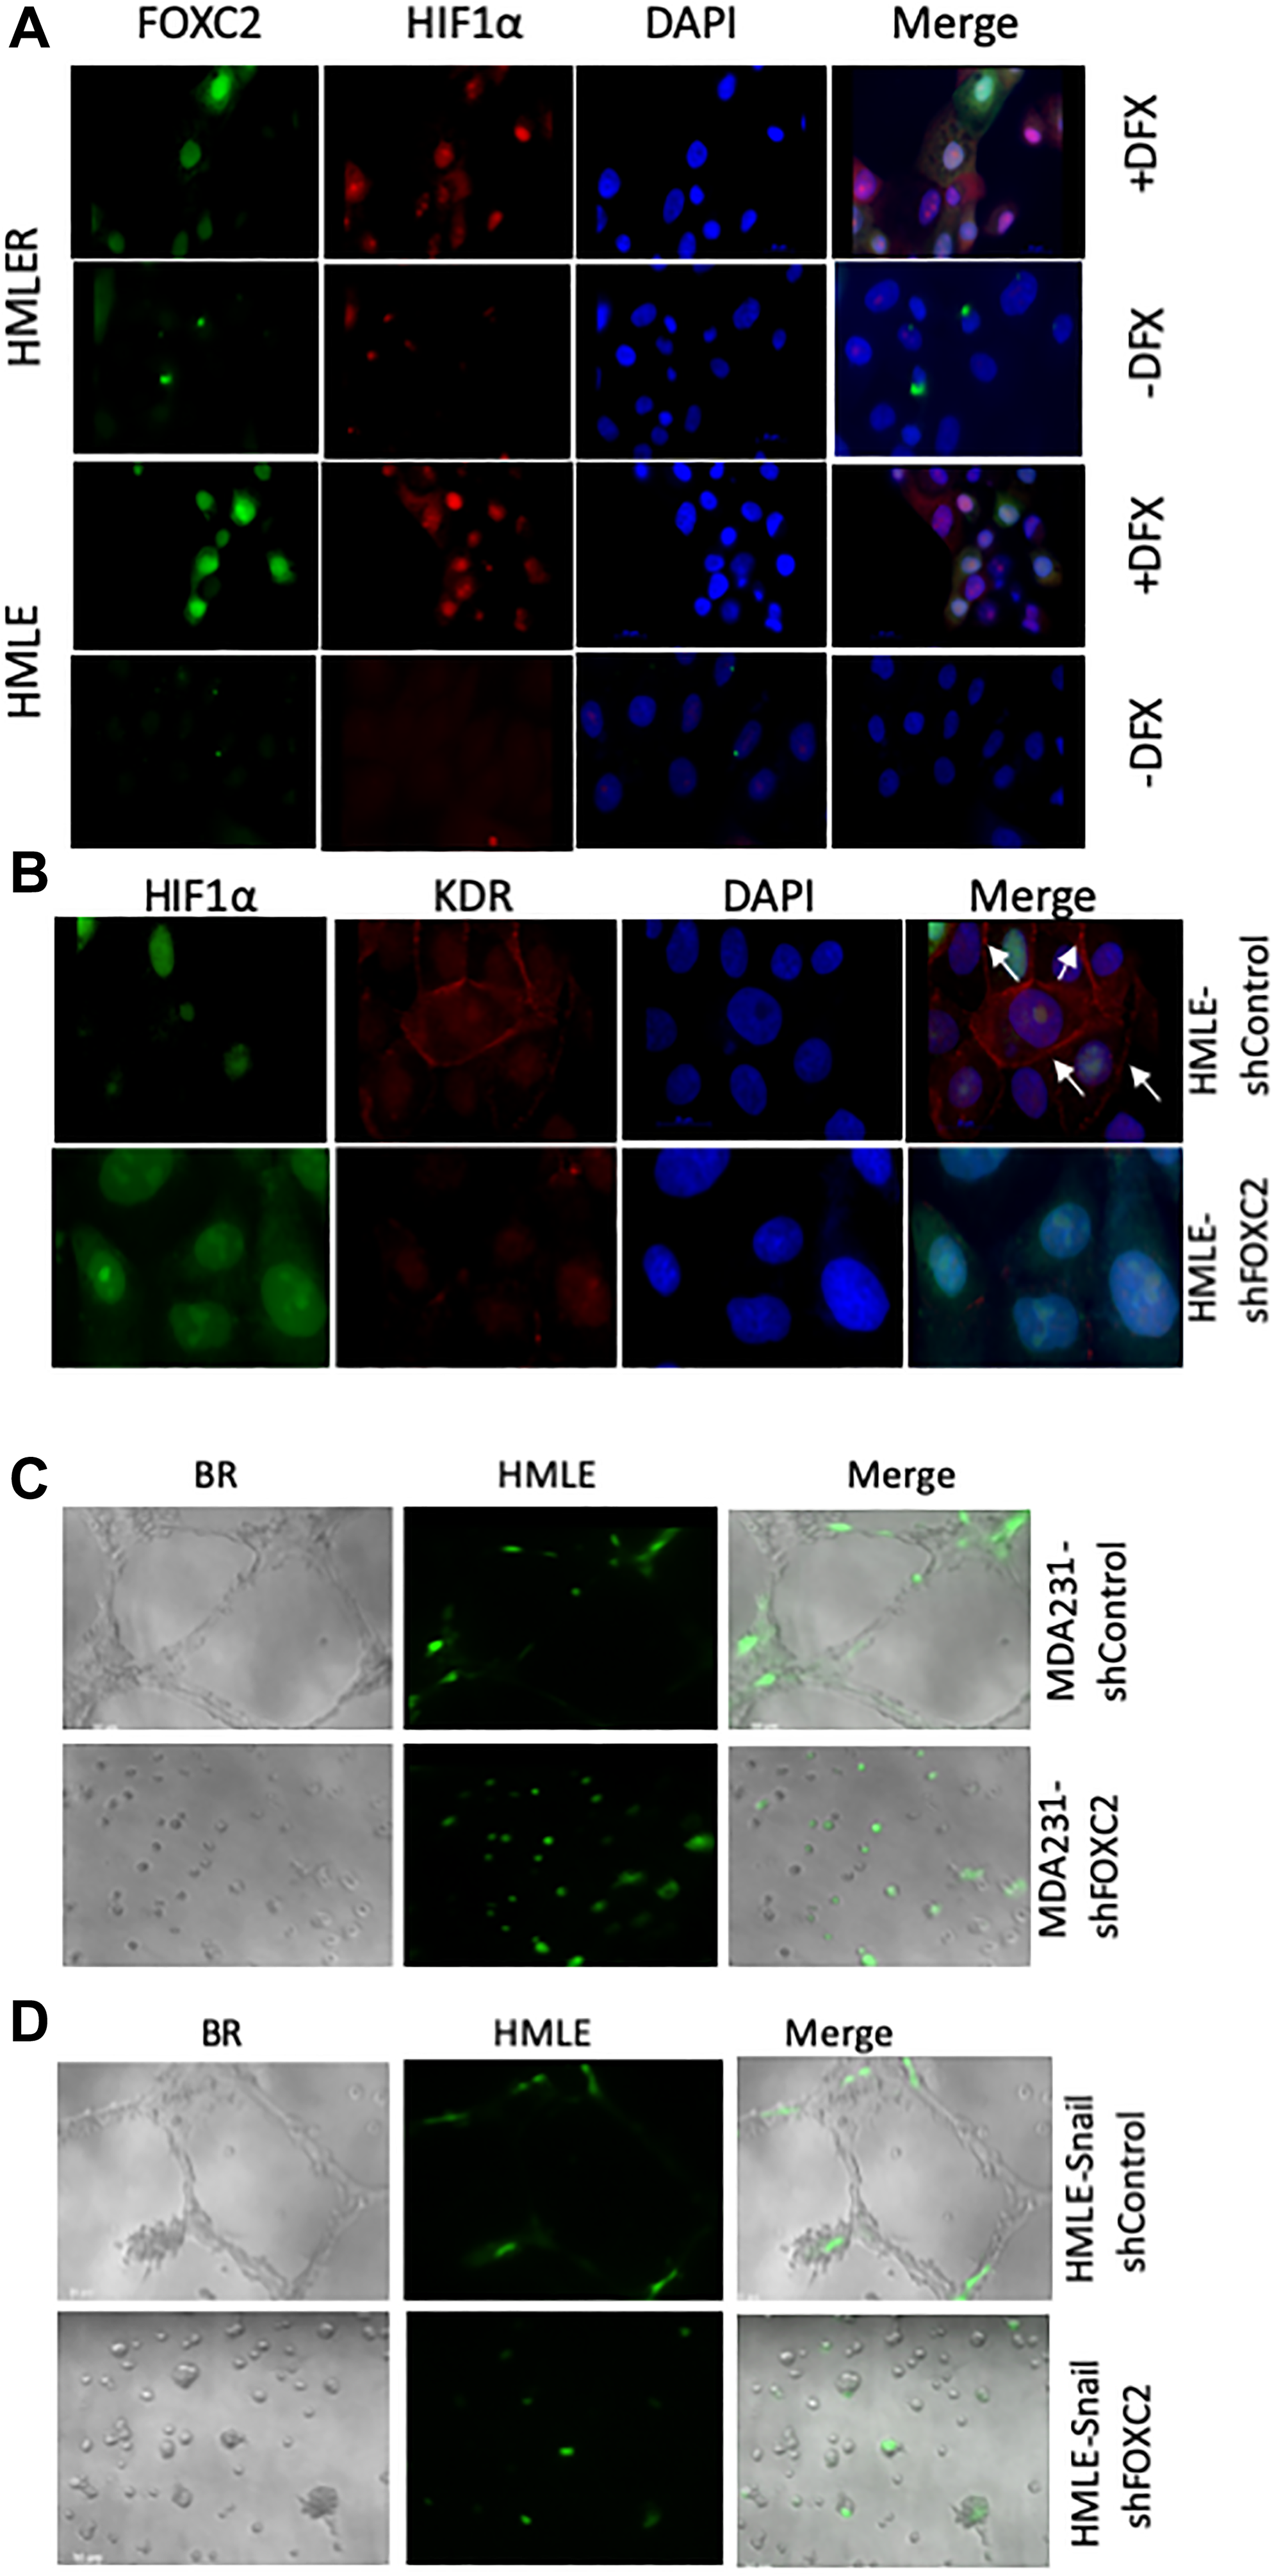 FOXC2 is necessary for the acquisition of endothelial phenotypic and functional characteristics in vitro.